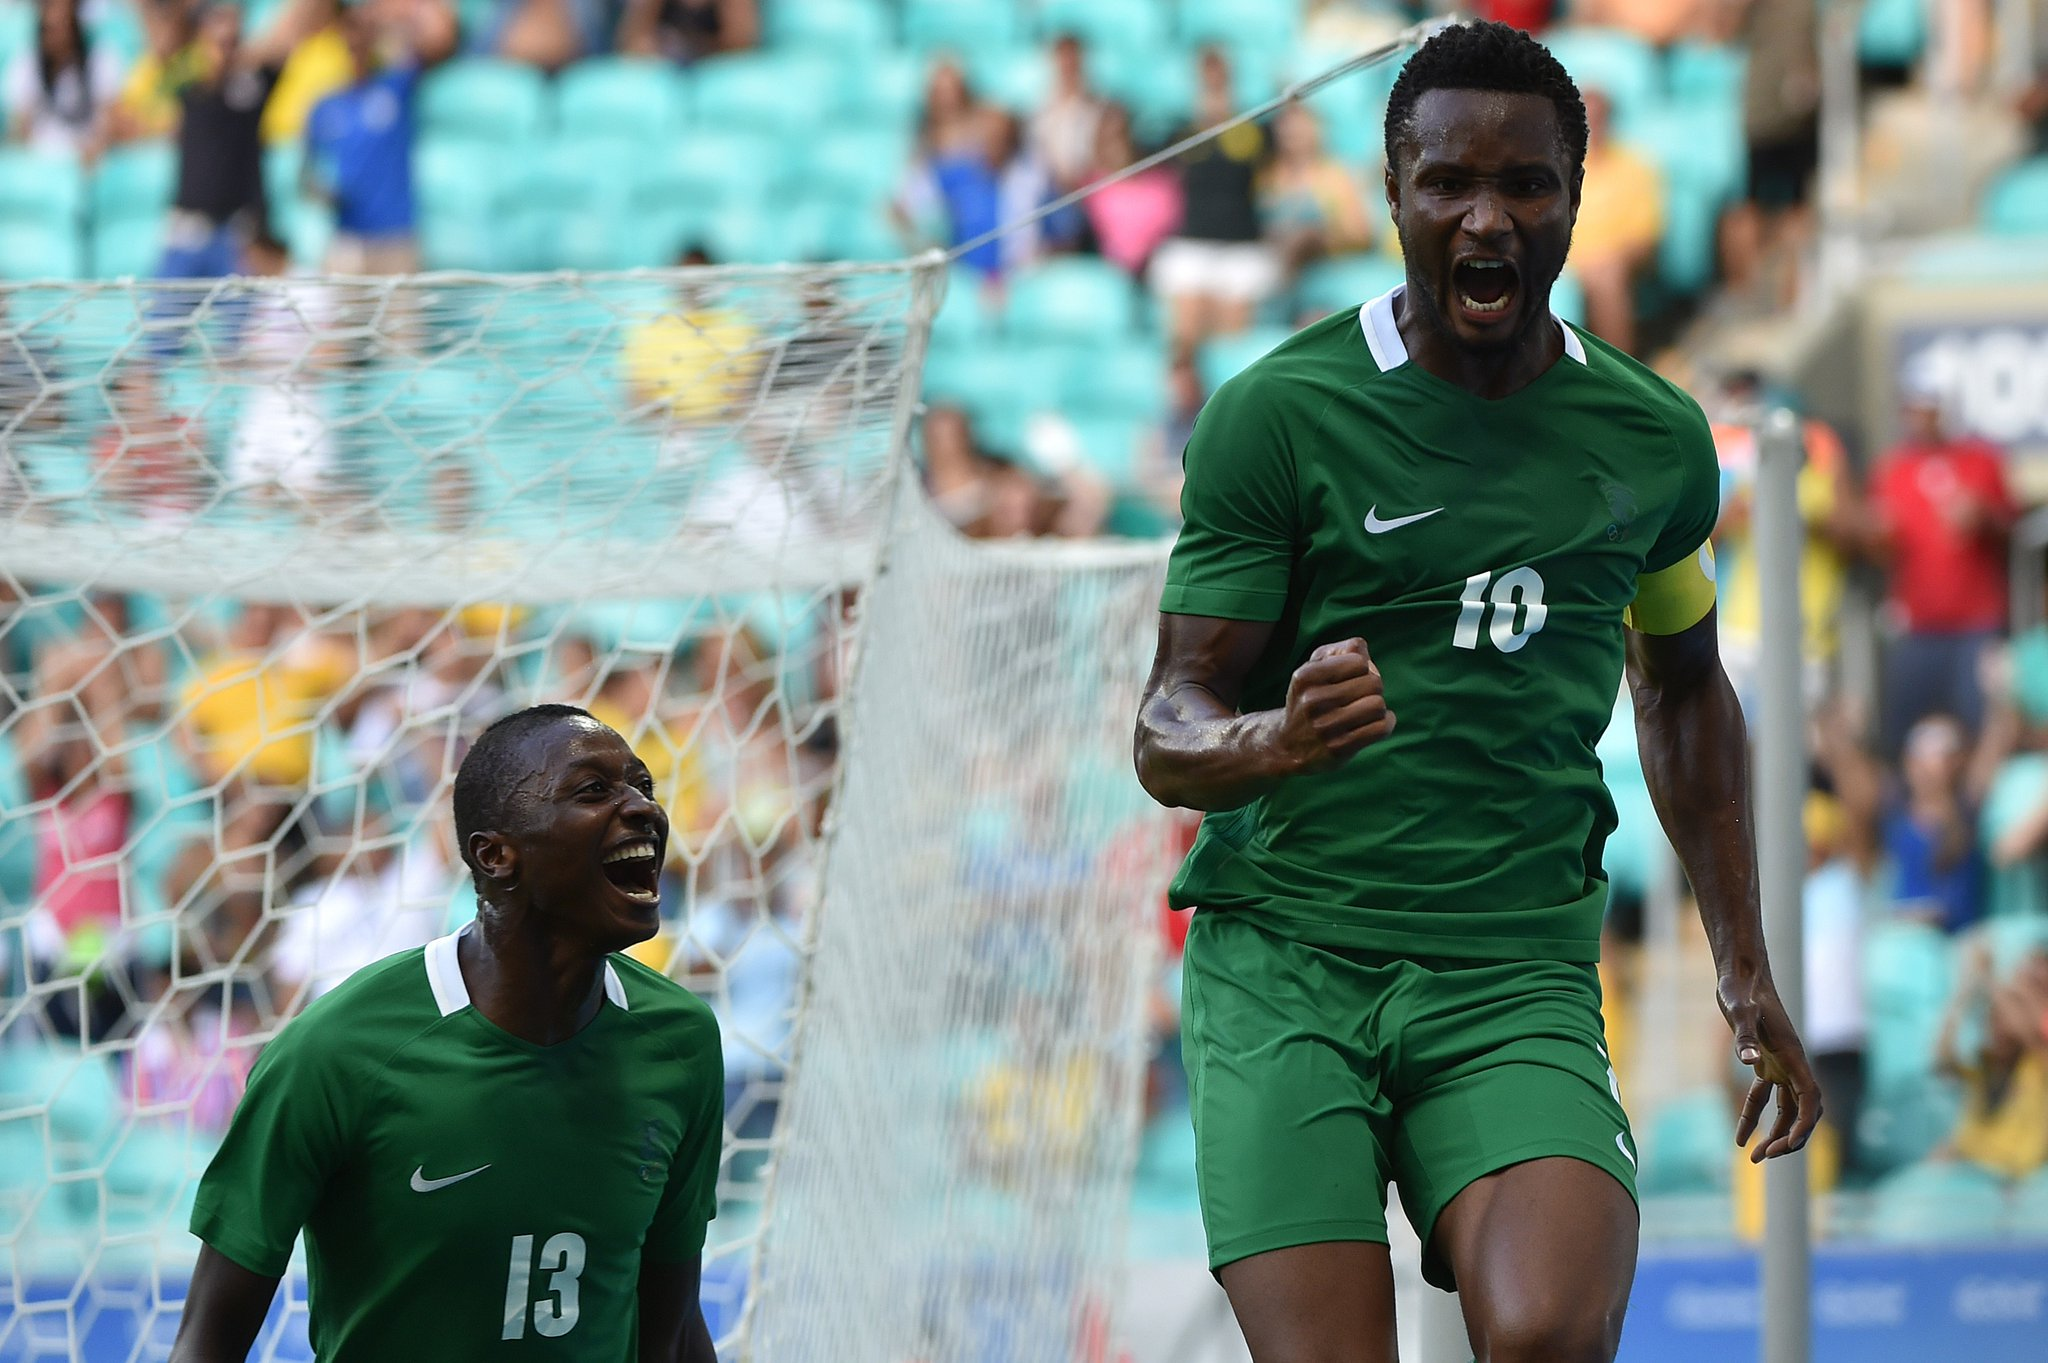 Mikel Voted Complete Sports August Player Of The Month